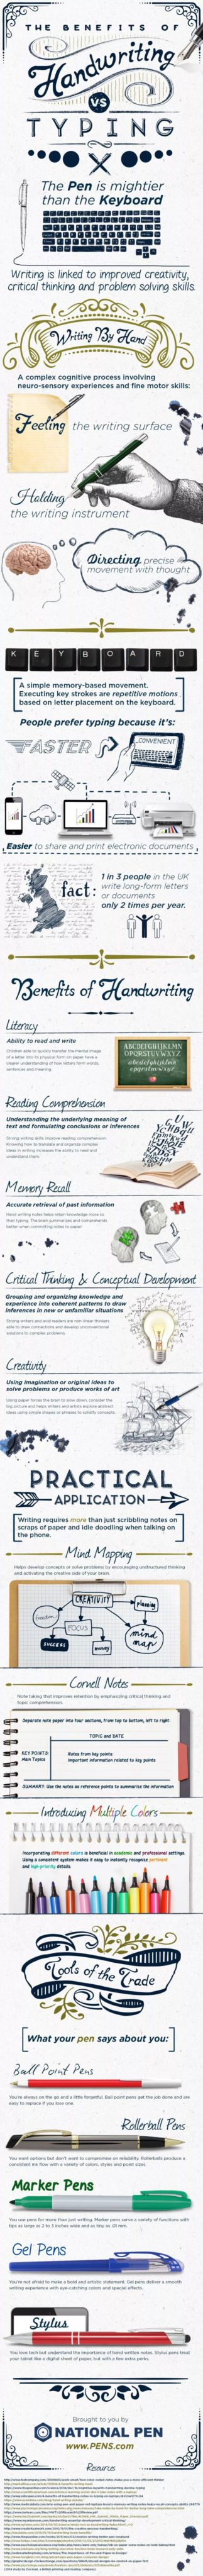 Infographic: The benefits of Handwriting vs Typing Infographic